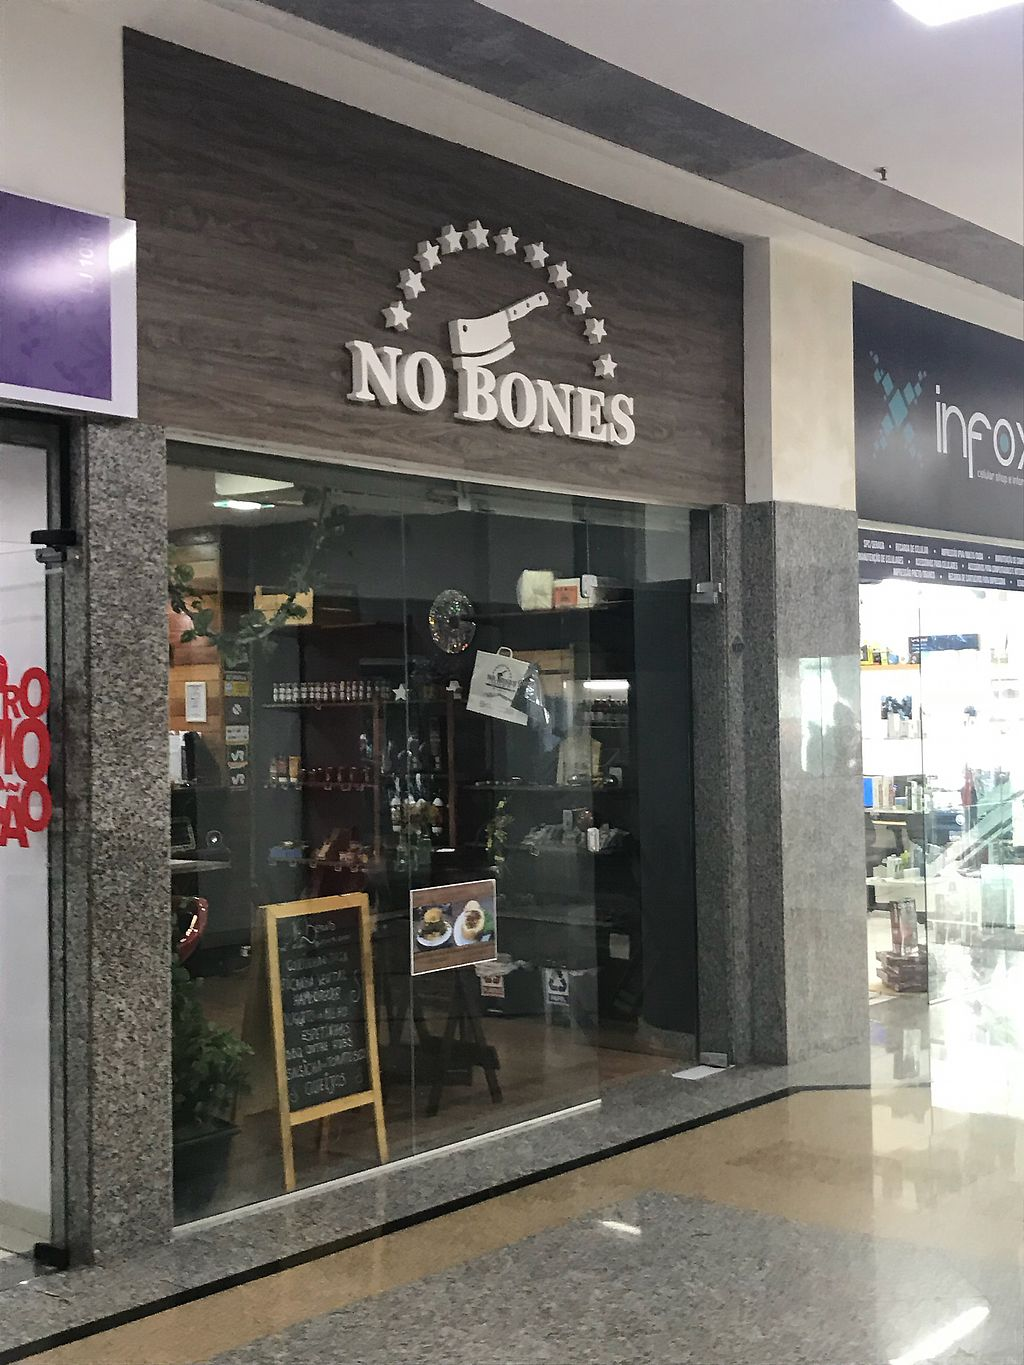 "Photo of No Bones - The Vegan Butcher Shop  by <a href=""/members/profile/rackoo"">rackoo</a> <br/>Storefront in small indoor mall <br/> May 9, 2018  - <a href='/contact/abuse/image/113797/397539'>Report</a>"